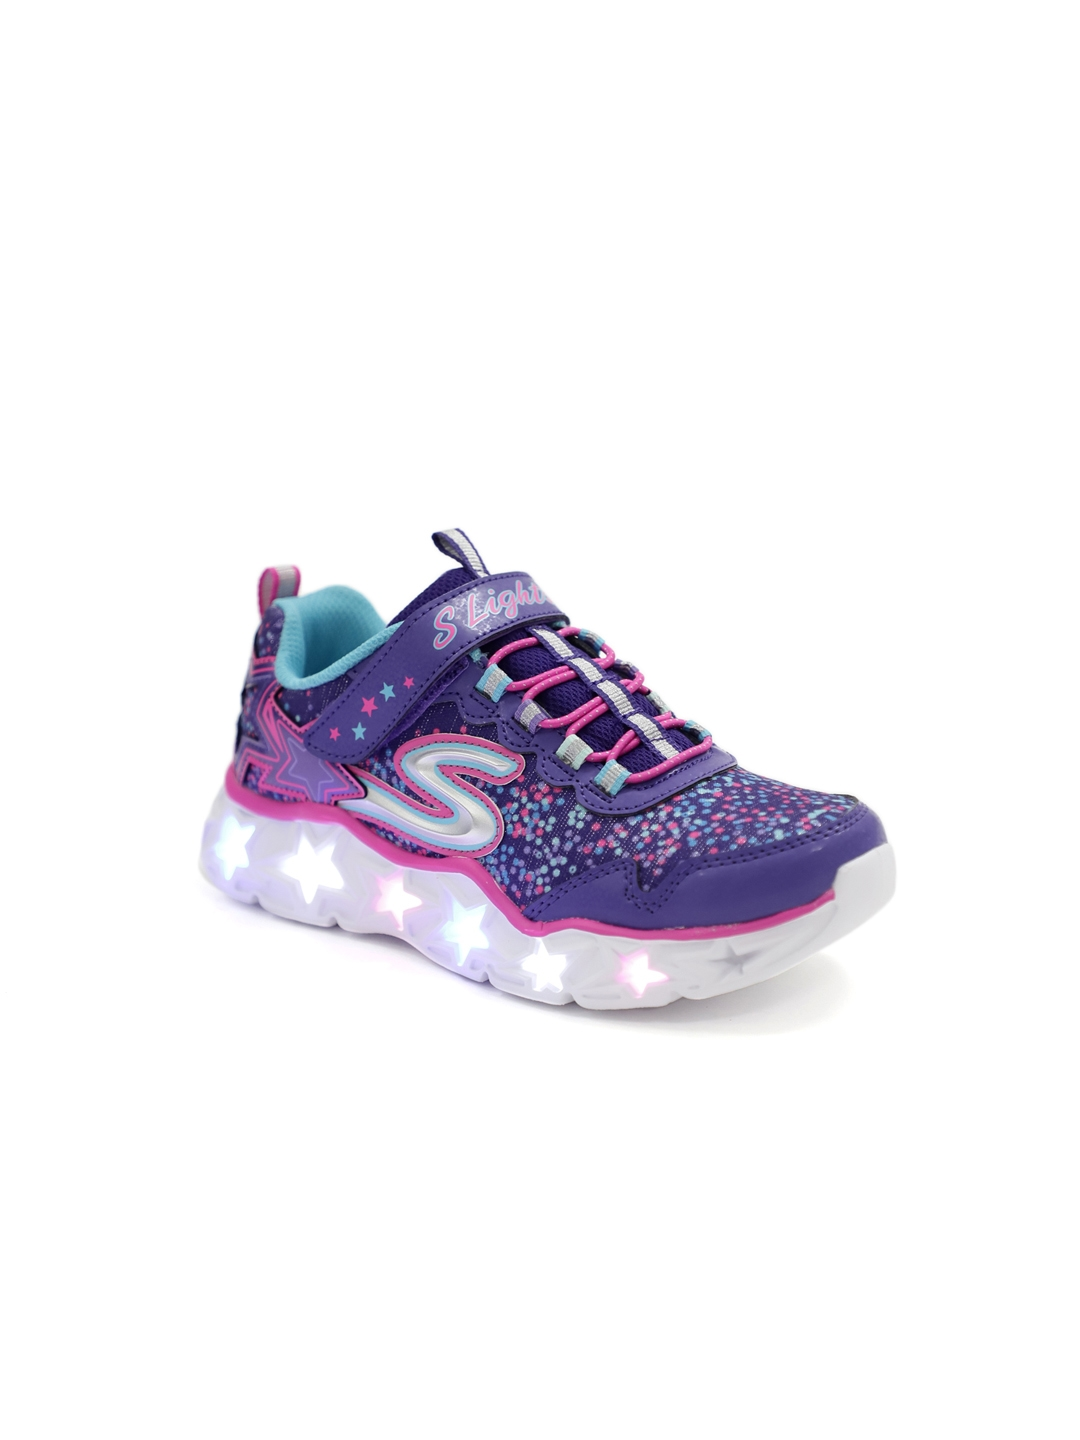 656fd4c3176a Buy Skechers Girls Purple Galaxy Lights Sneakers With LED Lights ...